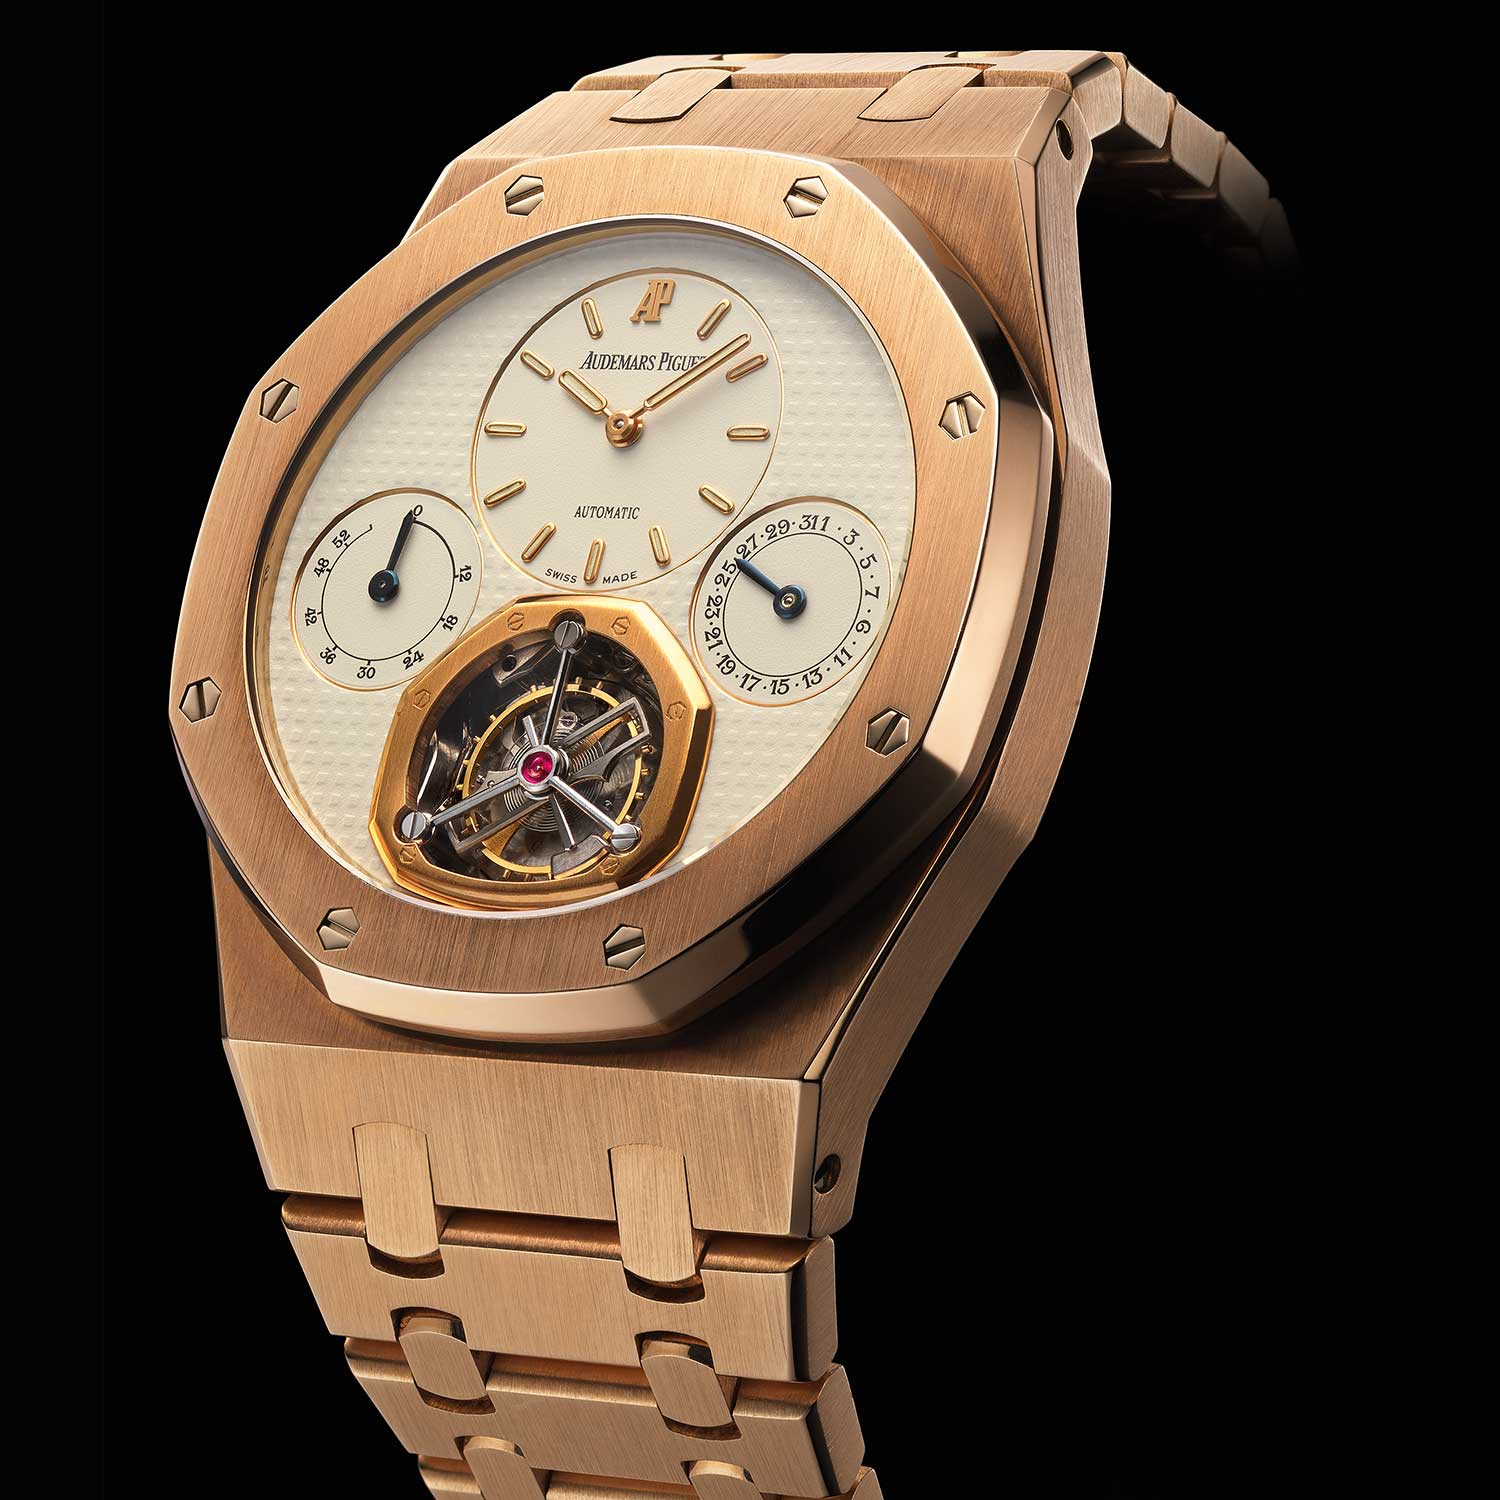 Royal Oak Tourbillon. Selfwinding, date, 52- hour power-reserve indication. Movement No 386194, 18-carat pink gold case No D99406, 01. Calibre 2875. Model 25831OR issued in a fivepiece limited edition. Audemars Piguet Heritage Collection, Inv. 910.